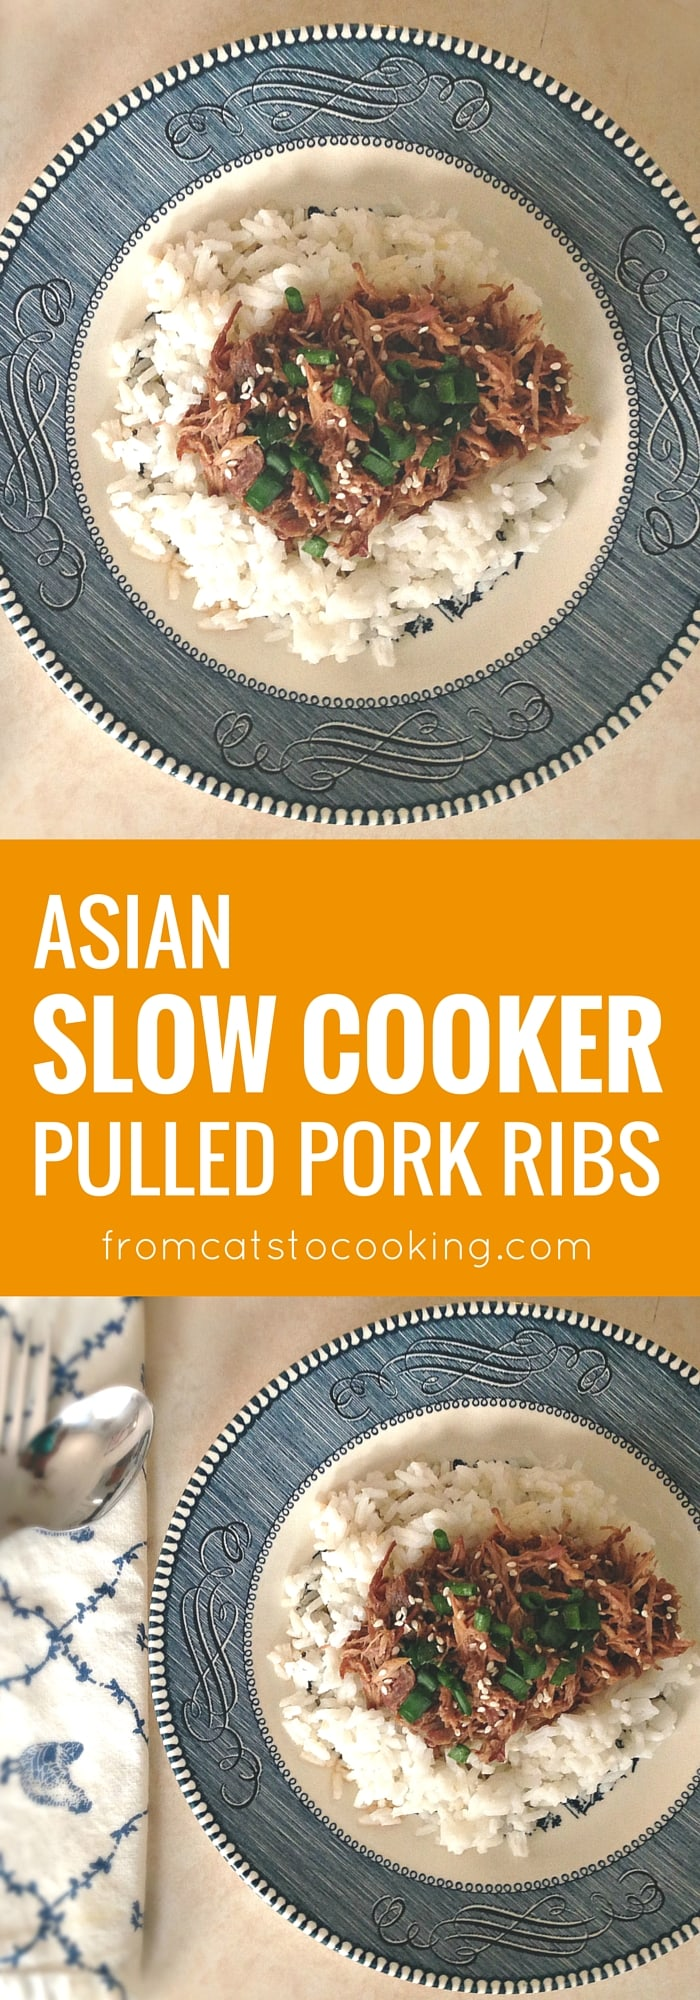 Asian Slow Cooker Pulled Pork Ribs recipe. This is perfect for dinner and makes awesome leftovers for lunch the next day. Is gluten-free and paleo as well!